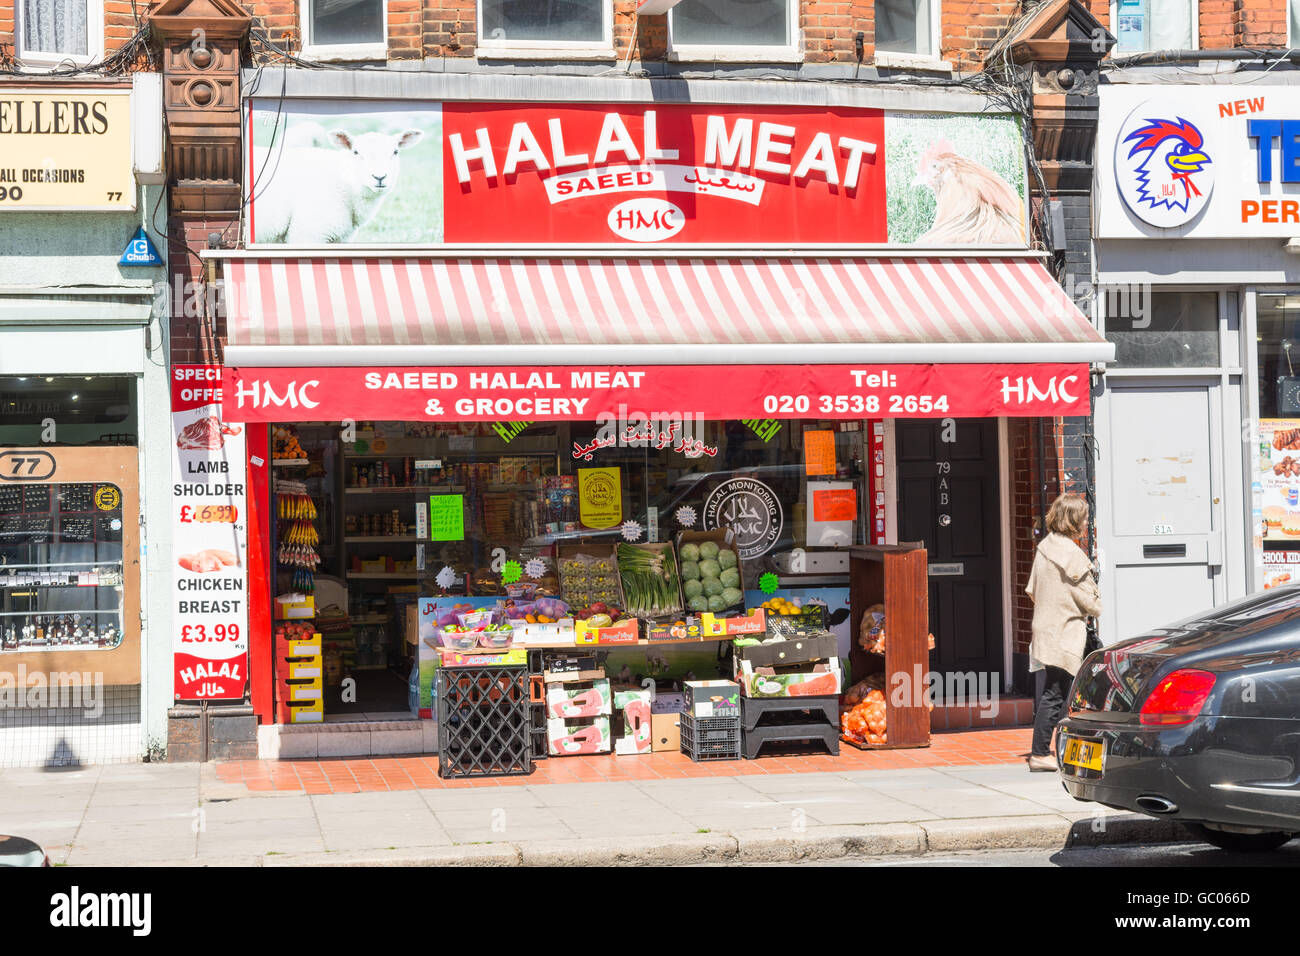 Store Front View Of Halal Grocery And Meat Shop In London England With Produce Displayed On